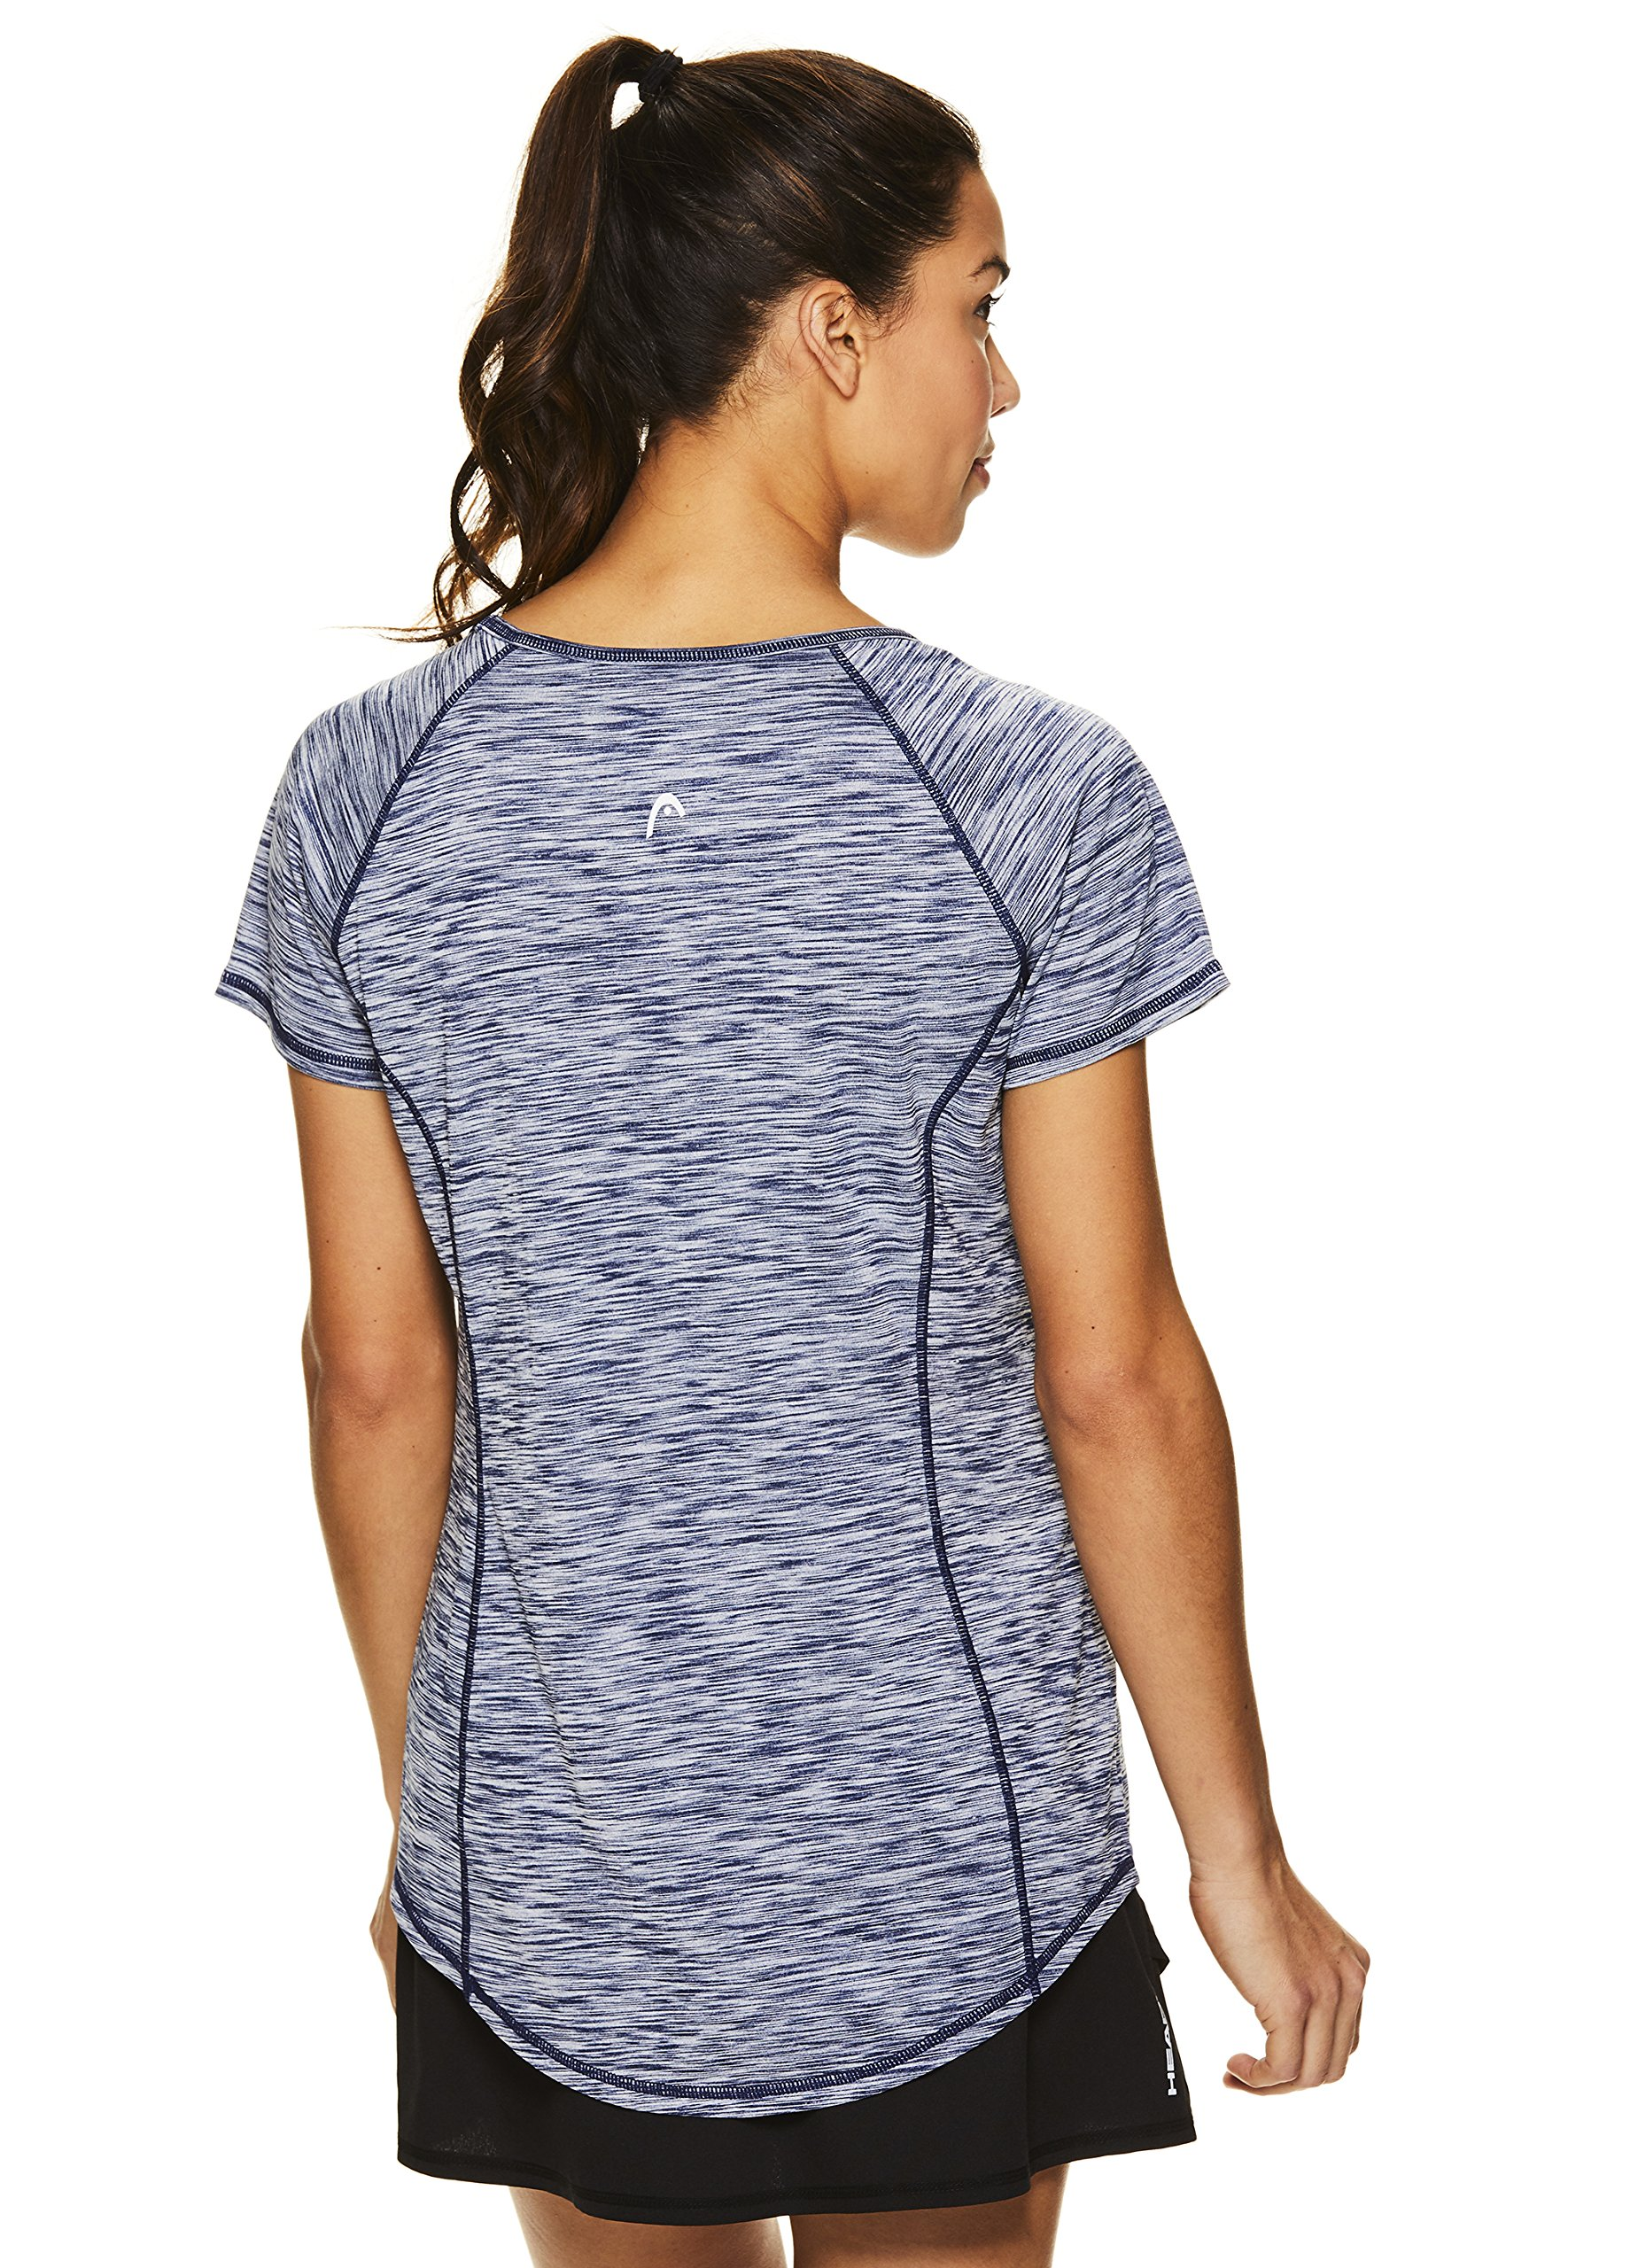 HEAD Women's Serena Short Sleeve Workout T-Shirt - Performance Crew Neck Activewear Top - Medieval Blue Heather, X-Small by HEAD (Image #3)